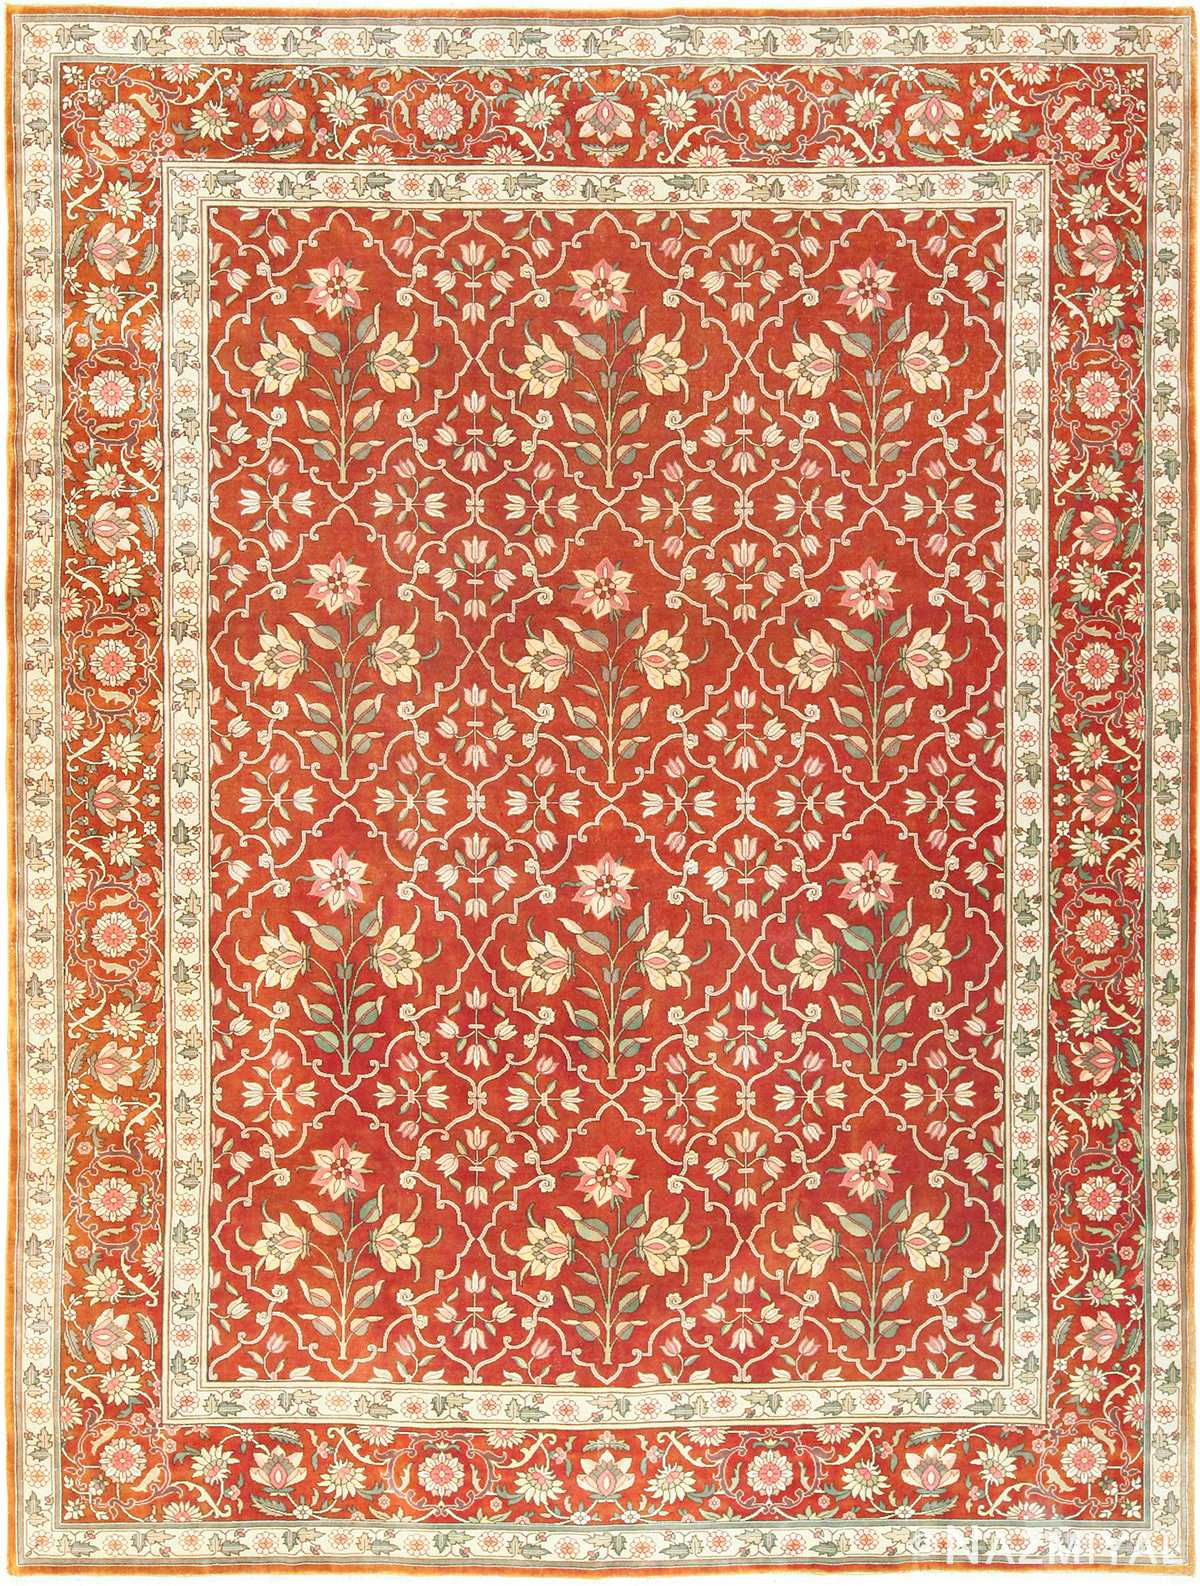 Floral Room Size Vintage Indian Rug 49477 Nazmiyal Persian